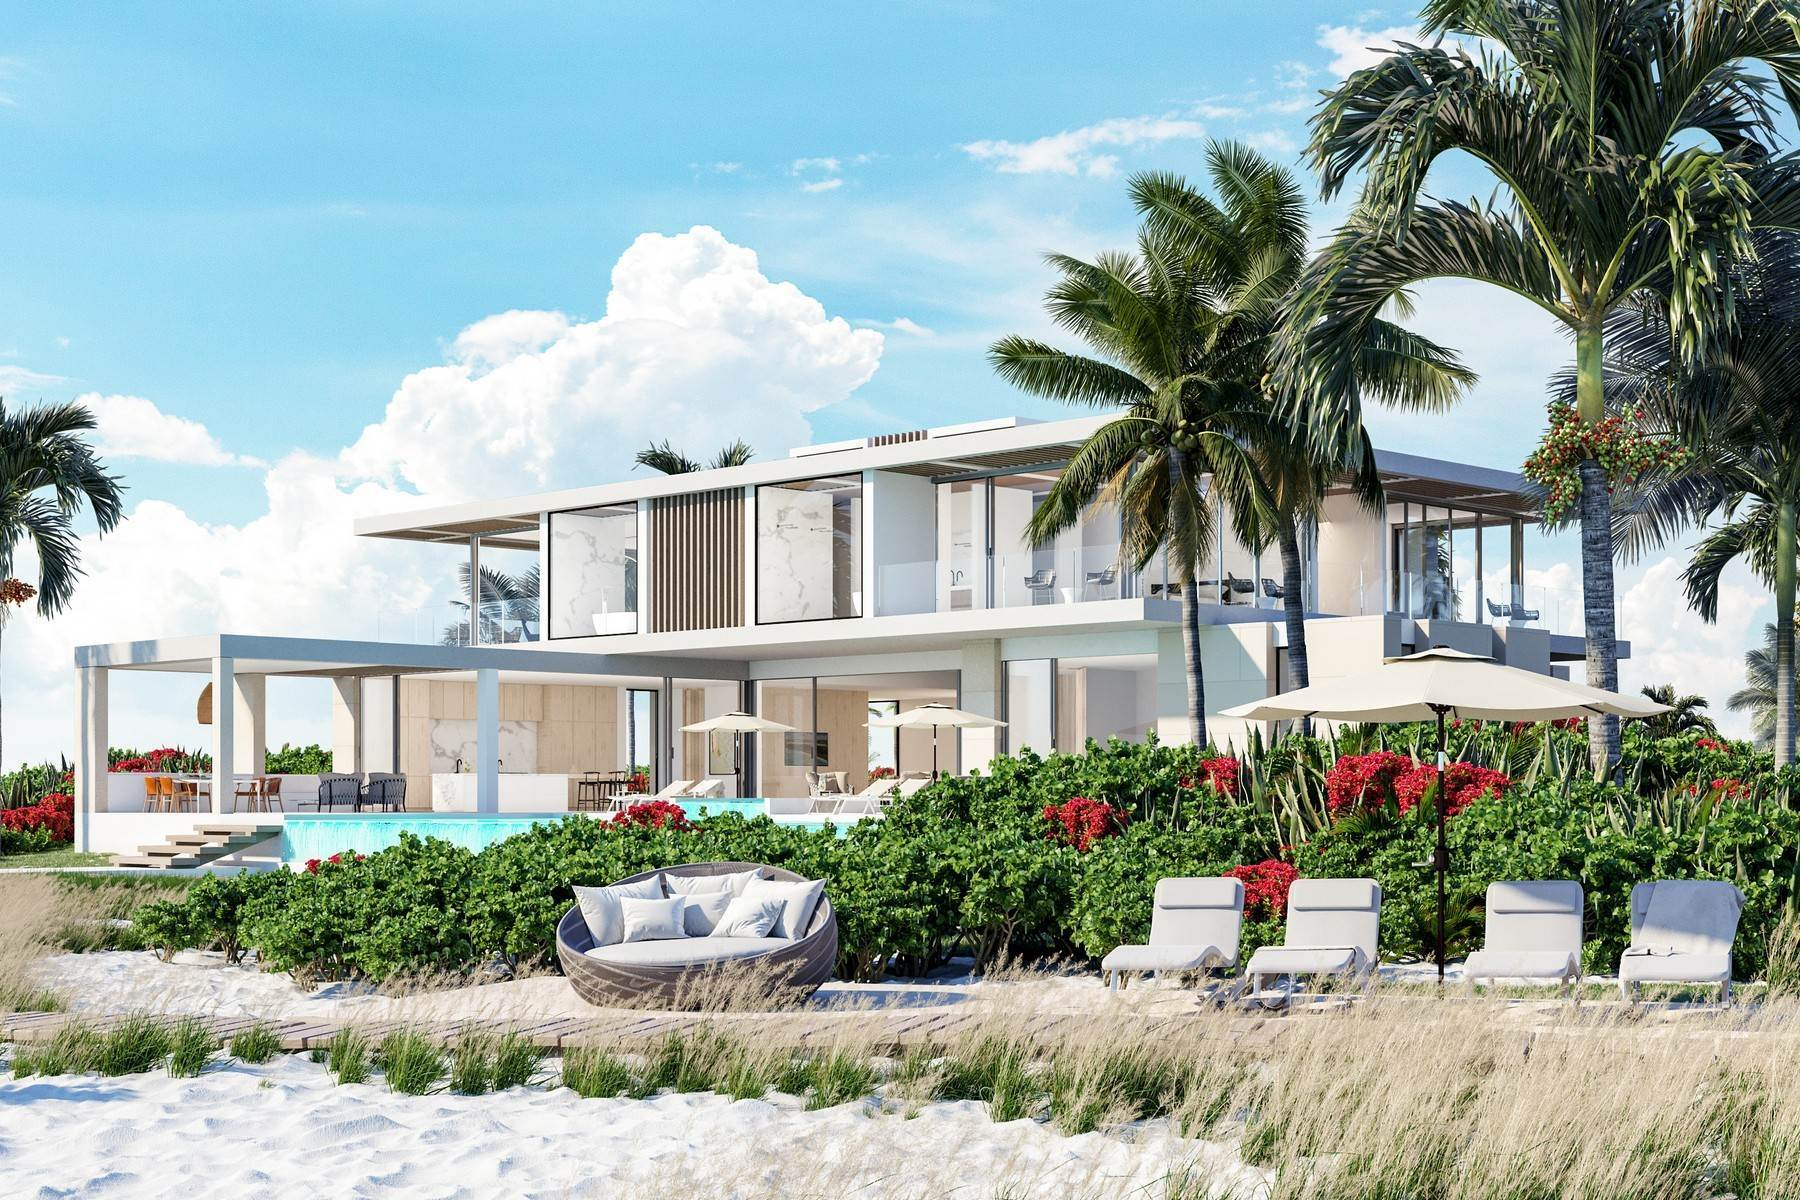 Single Family Homes for Sale at The Peninsula at Emerald Estate - Beach House 3 Emerald Point Beachfront Leeward, Providenciales TKCA 1ZZ Turks And Caicos Islands